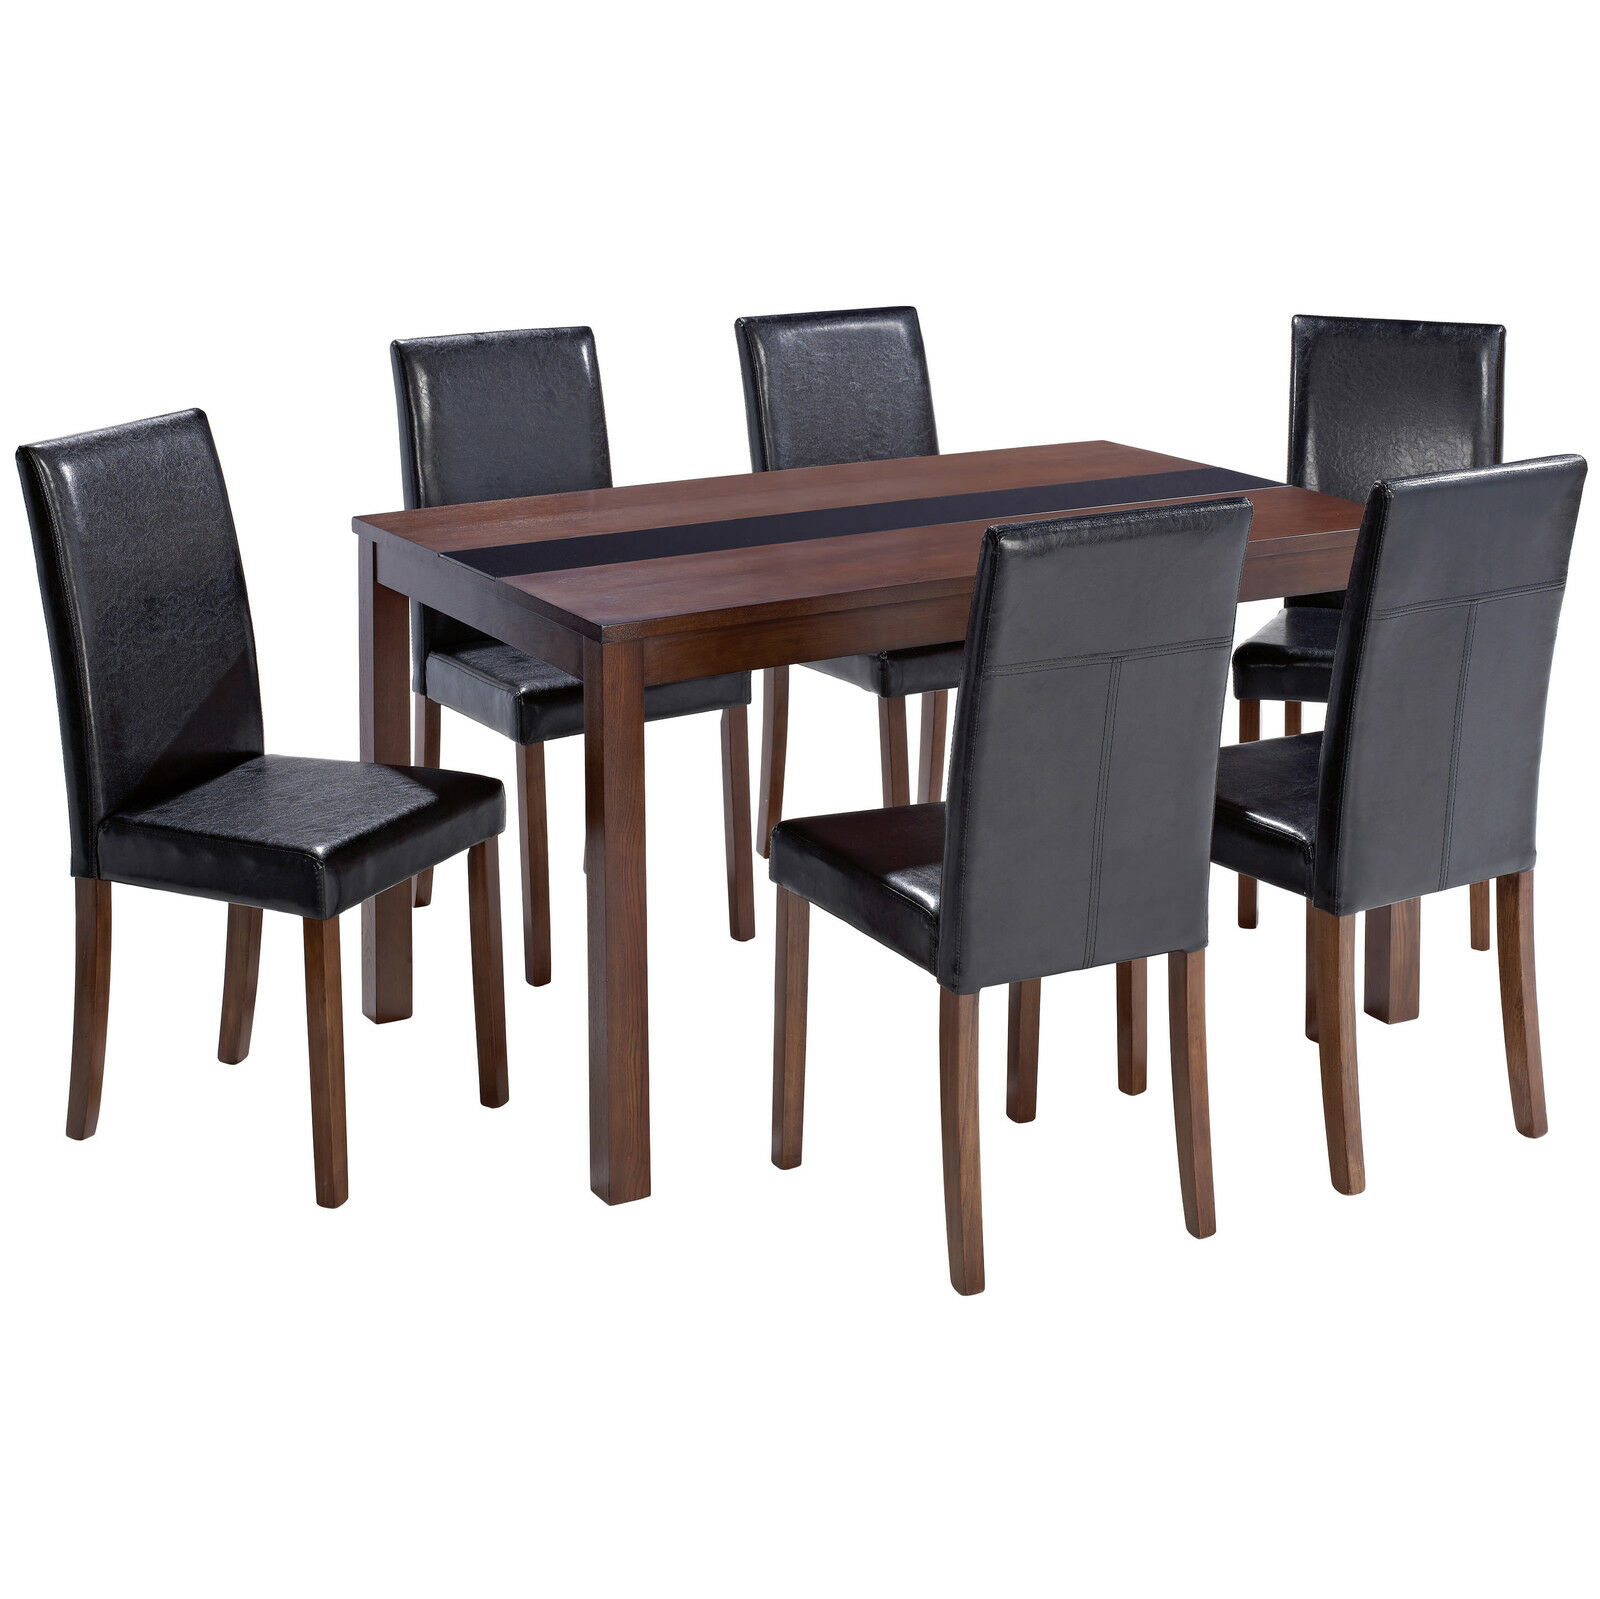 Walnut Finish Dining Table and Chair Set with 6 Black  : Walnut Finish Dining Table and Chair Set with from picclick.co.uk size 1600 x 1599 jpeg 186kB